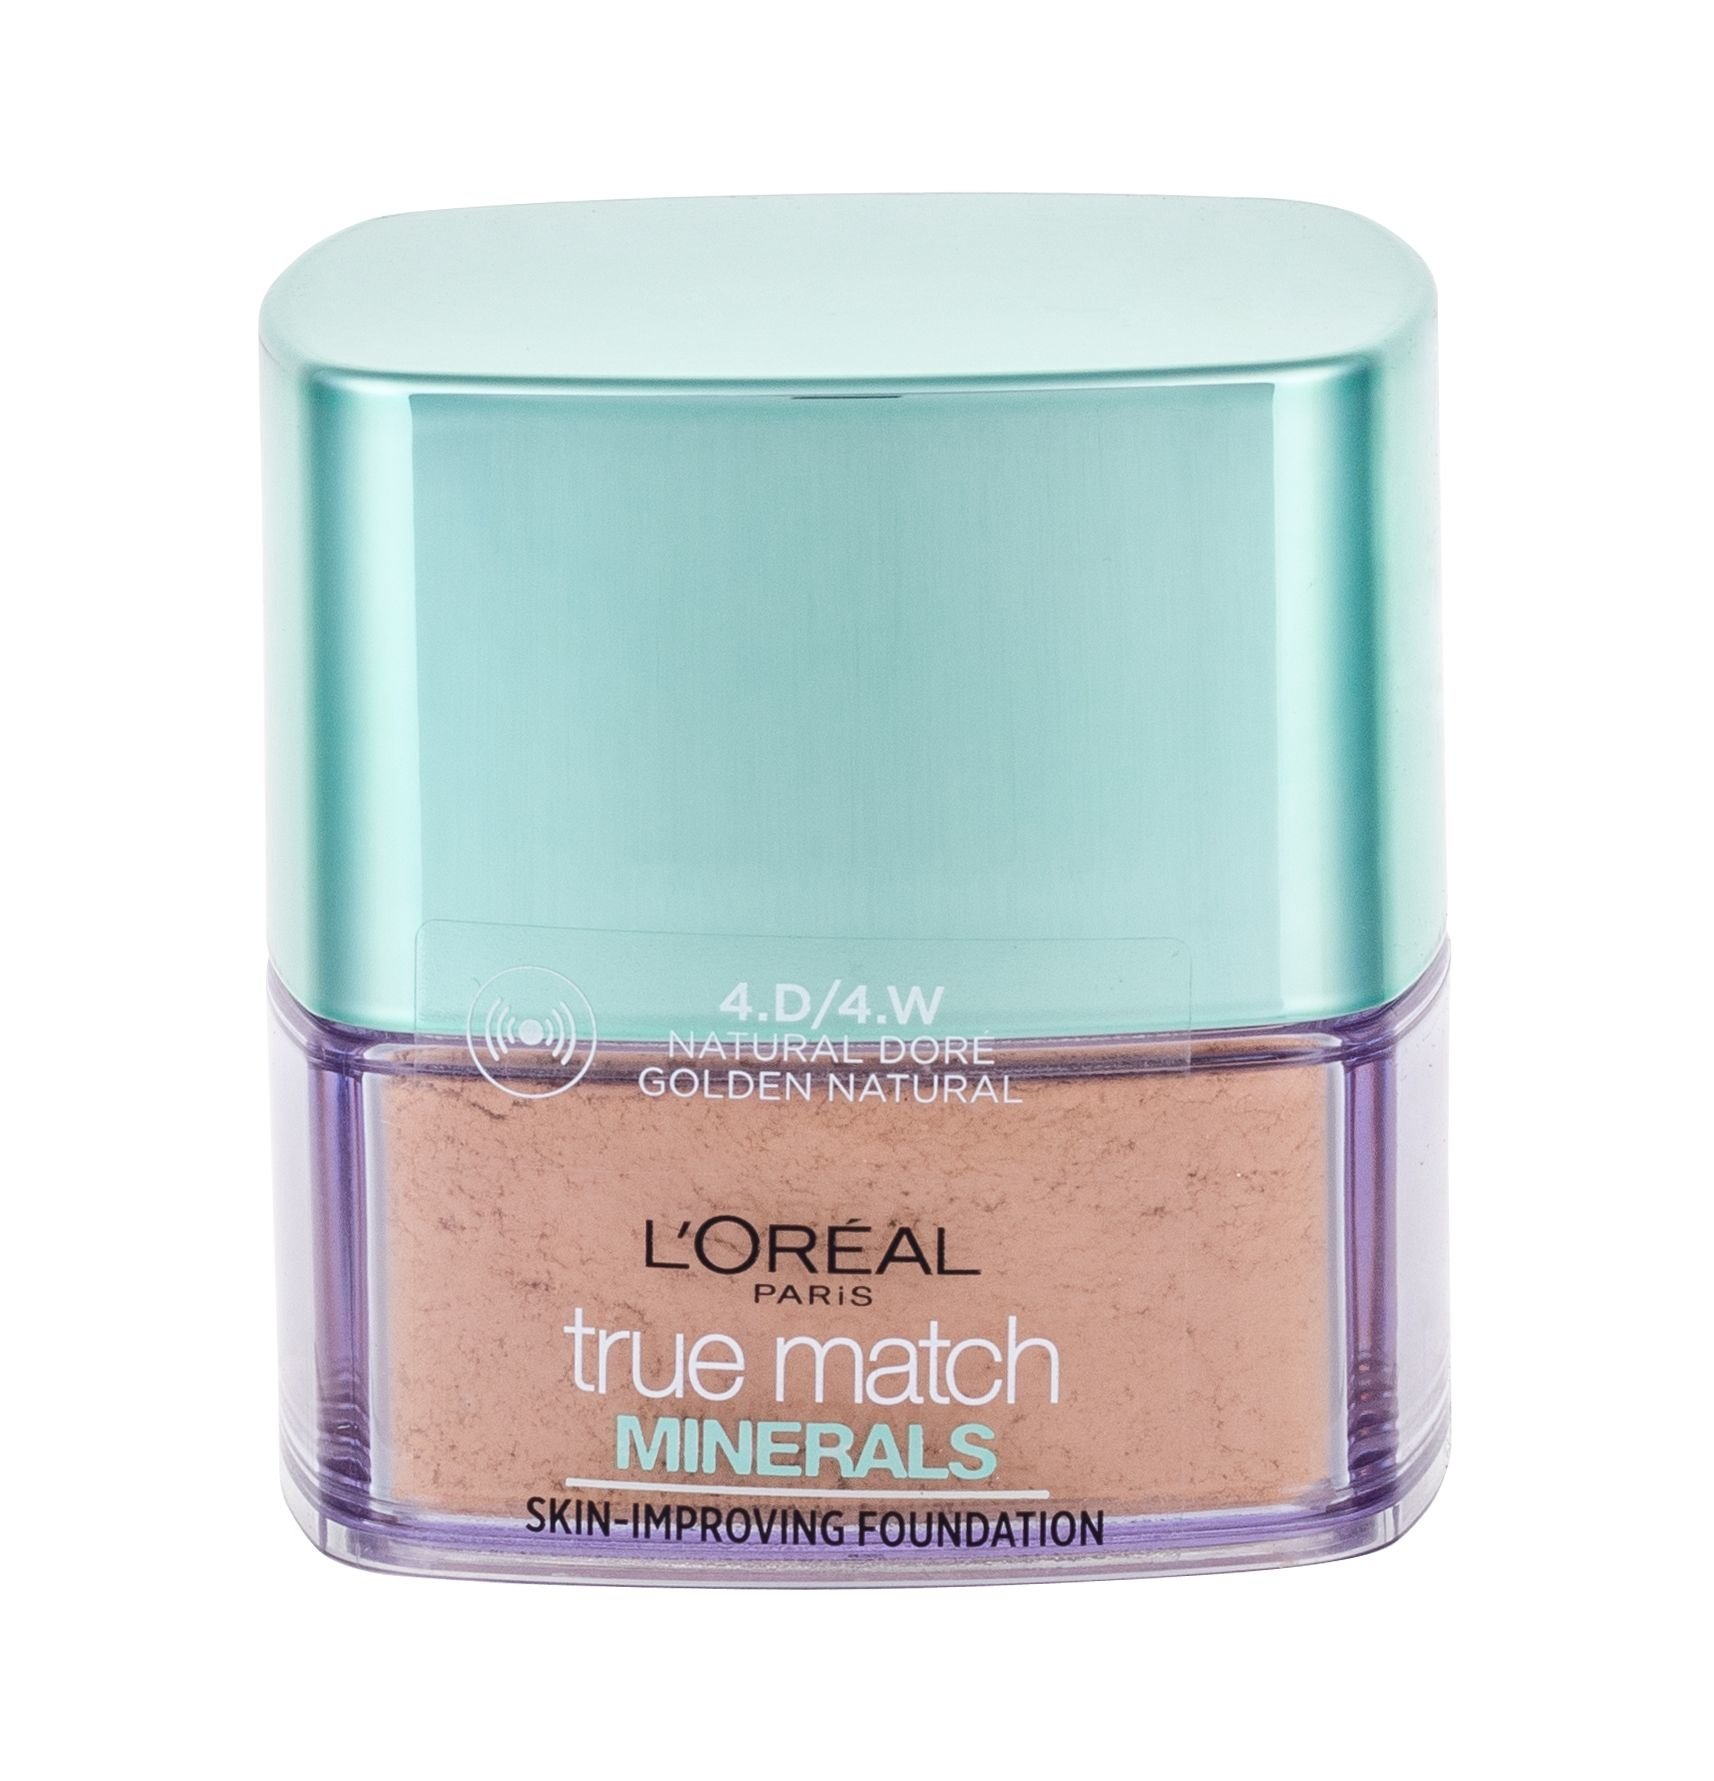 L´Oréal Paris True Match Cosmetic 10ml 4.D/4.W Golden Natural